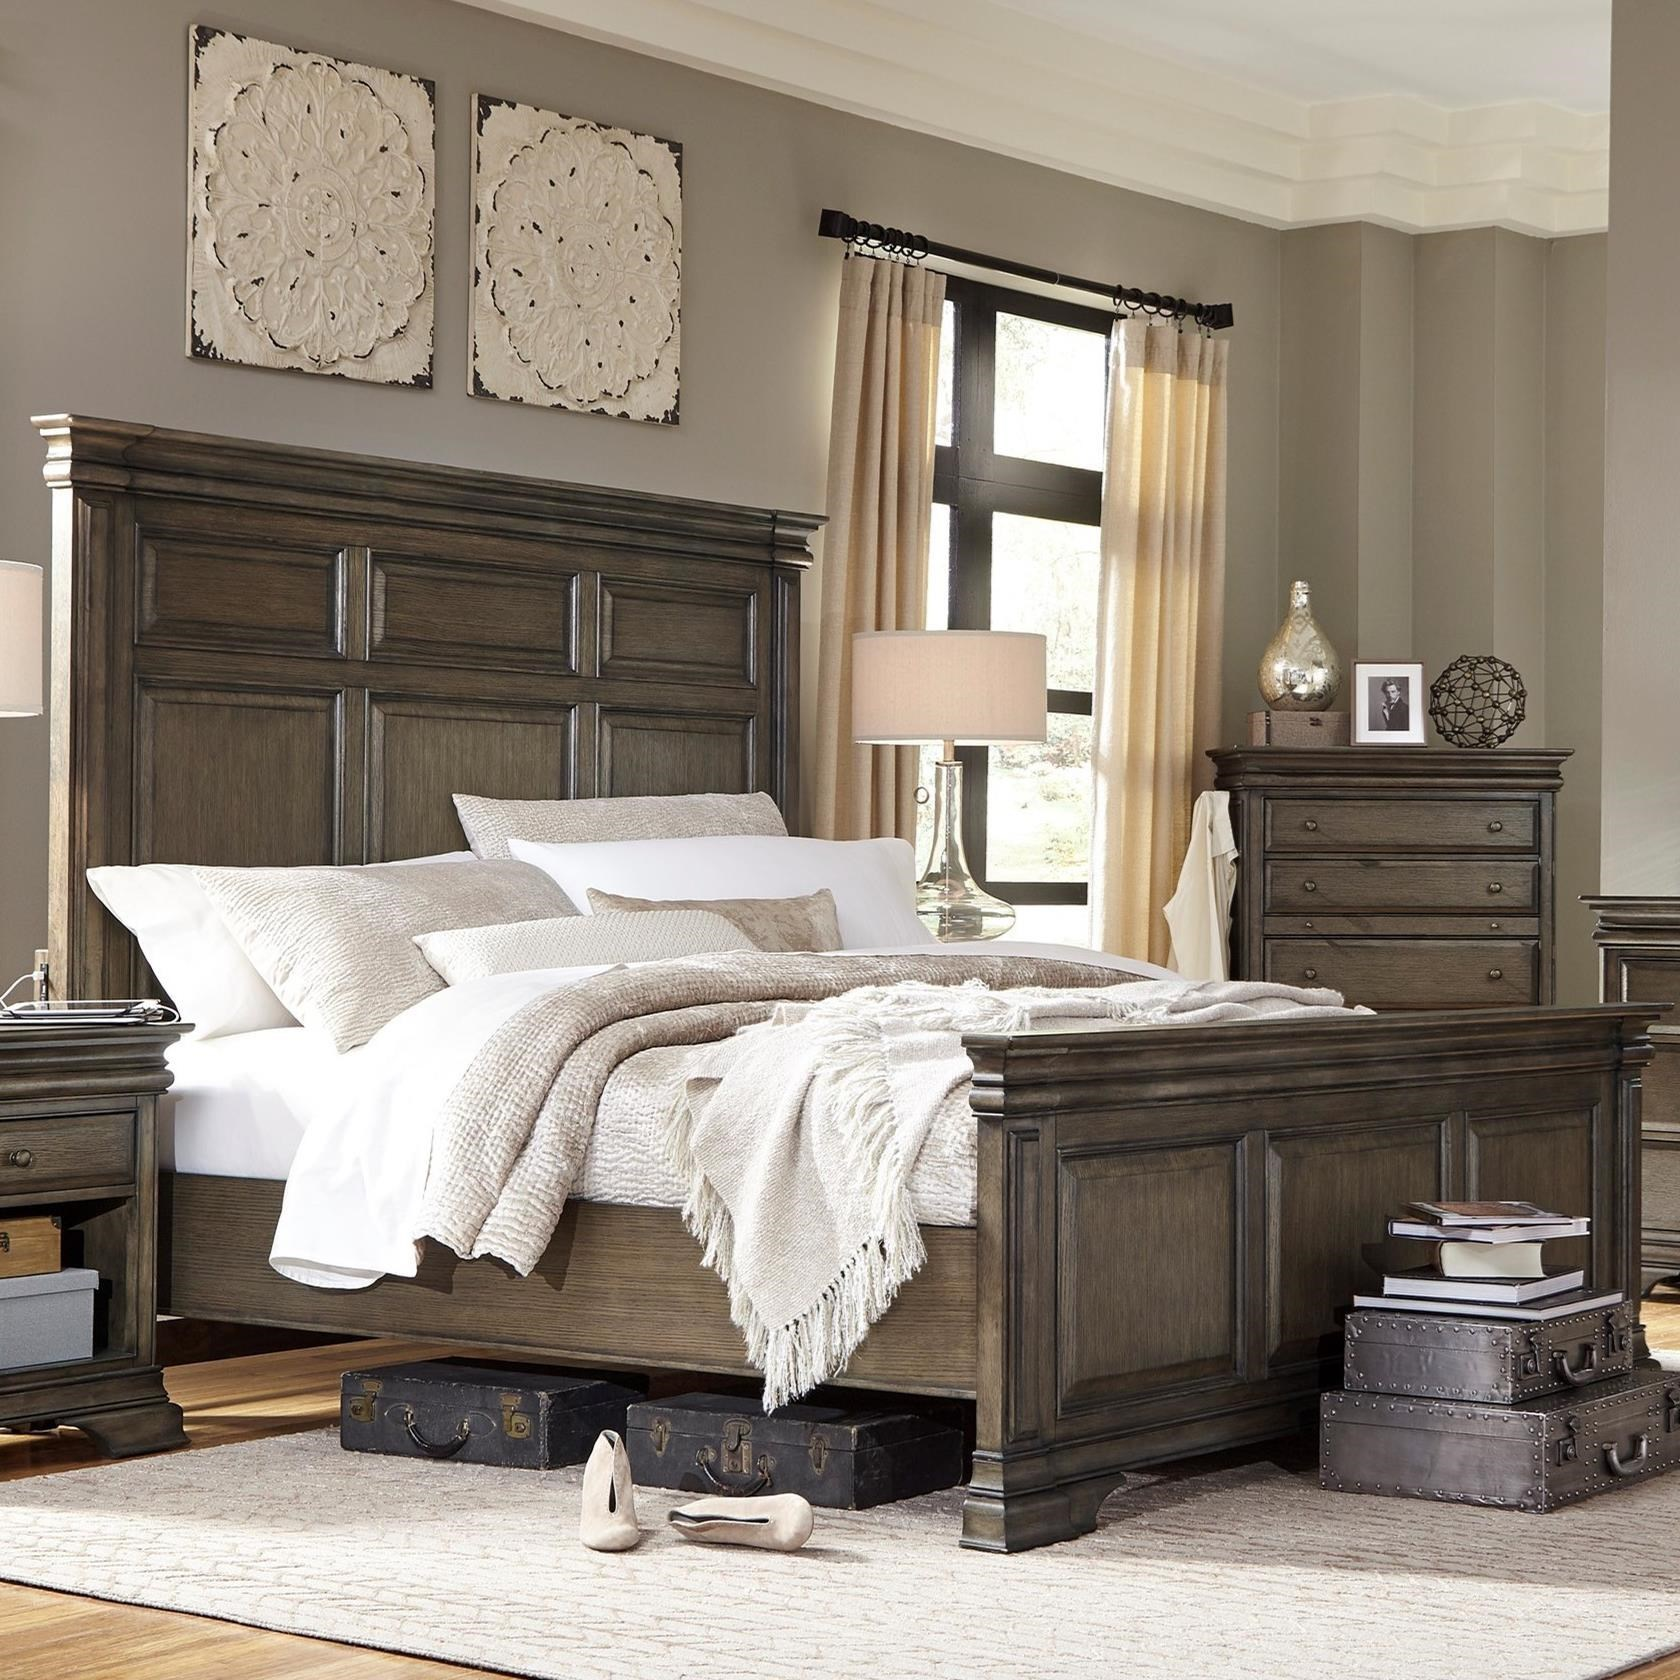 Aspenhome Arcadia Queen Panel Bed - Item Number: I92-412-413-402